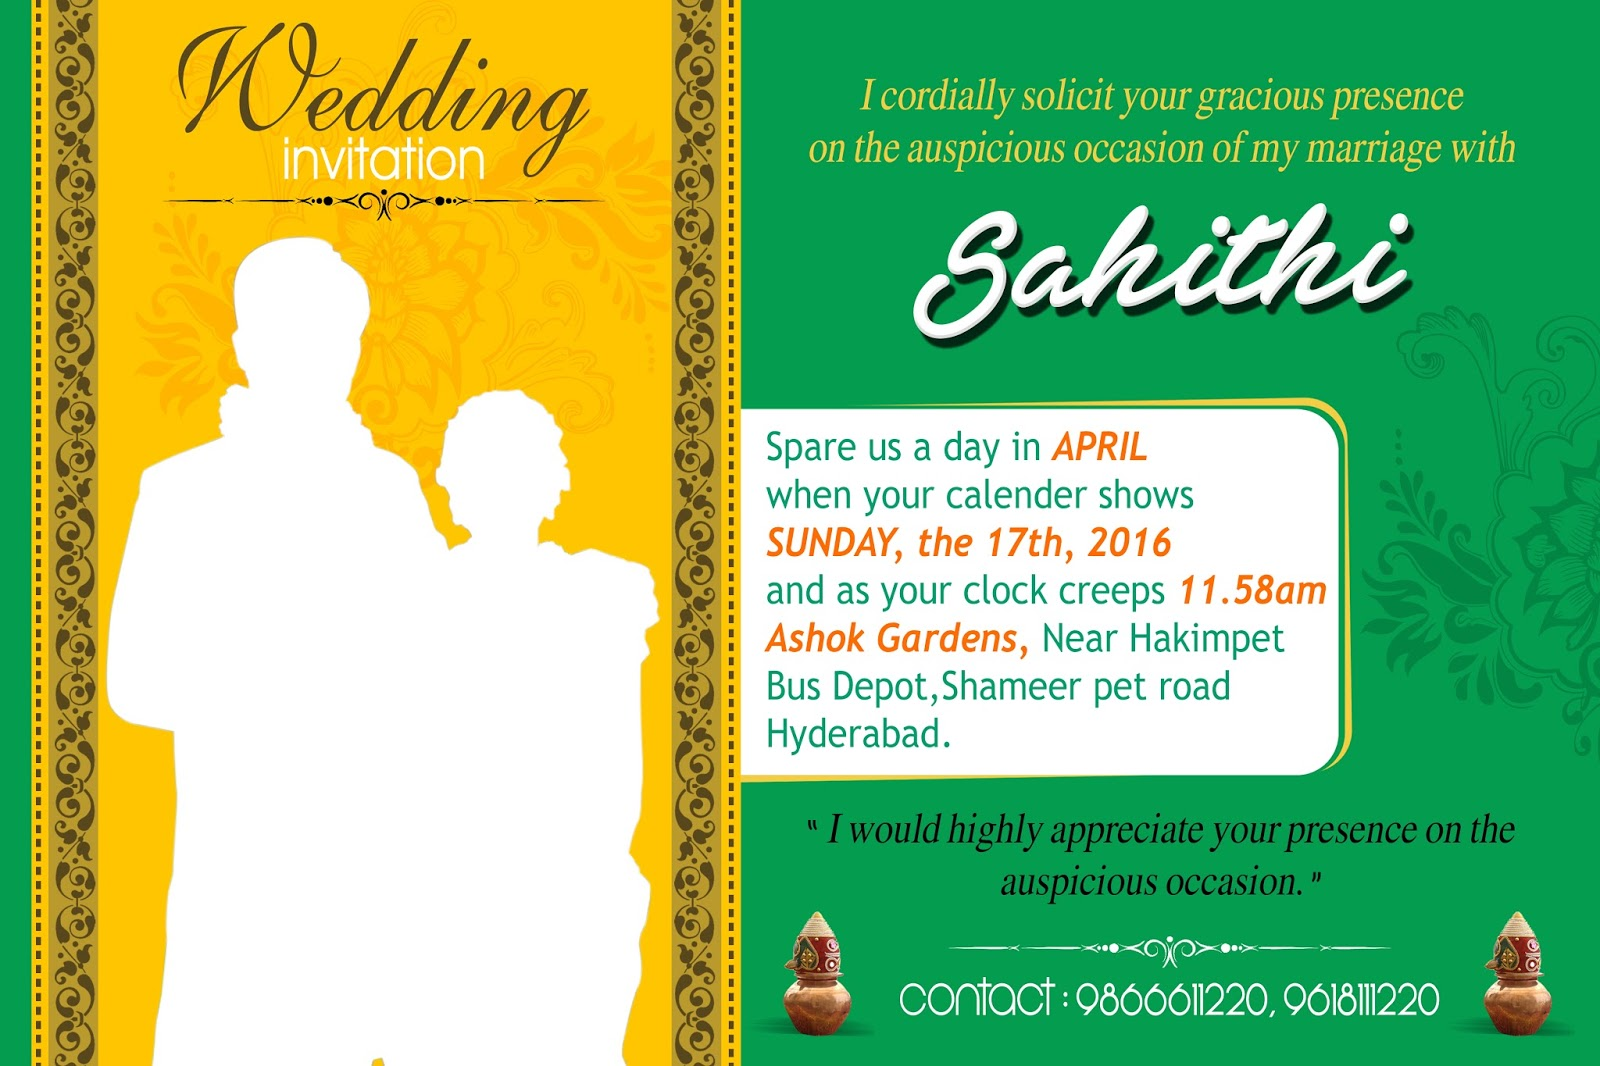 Online Invitation Templates For Wedding Pasoevolistco - Wedding invitation templates free online